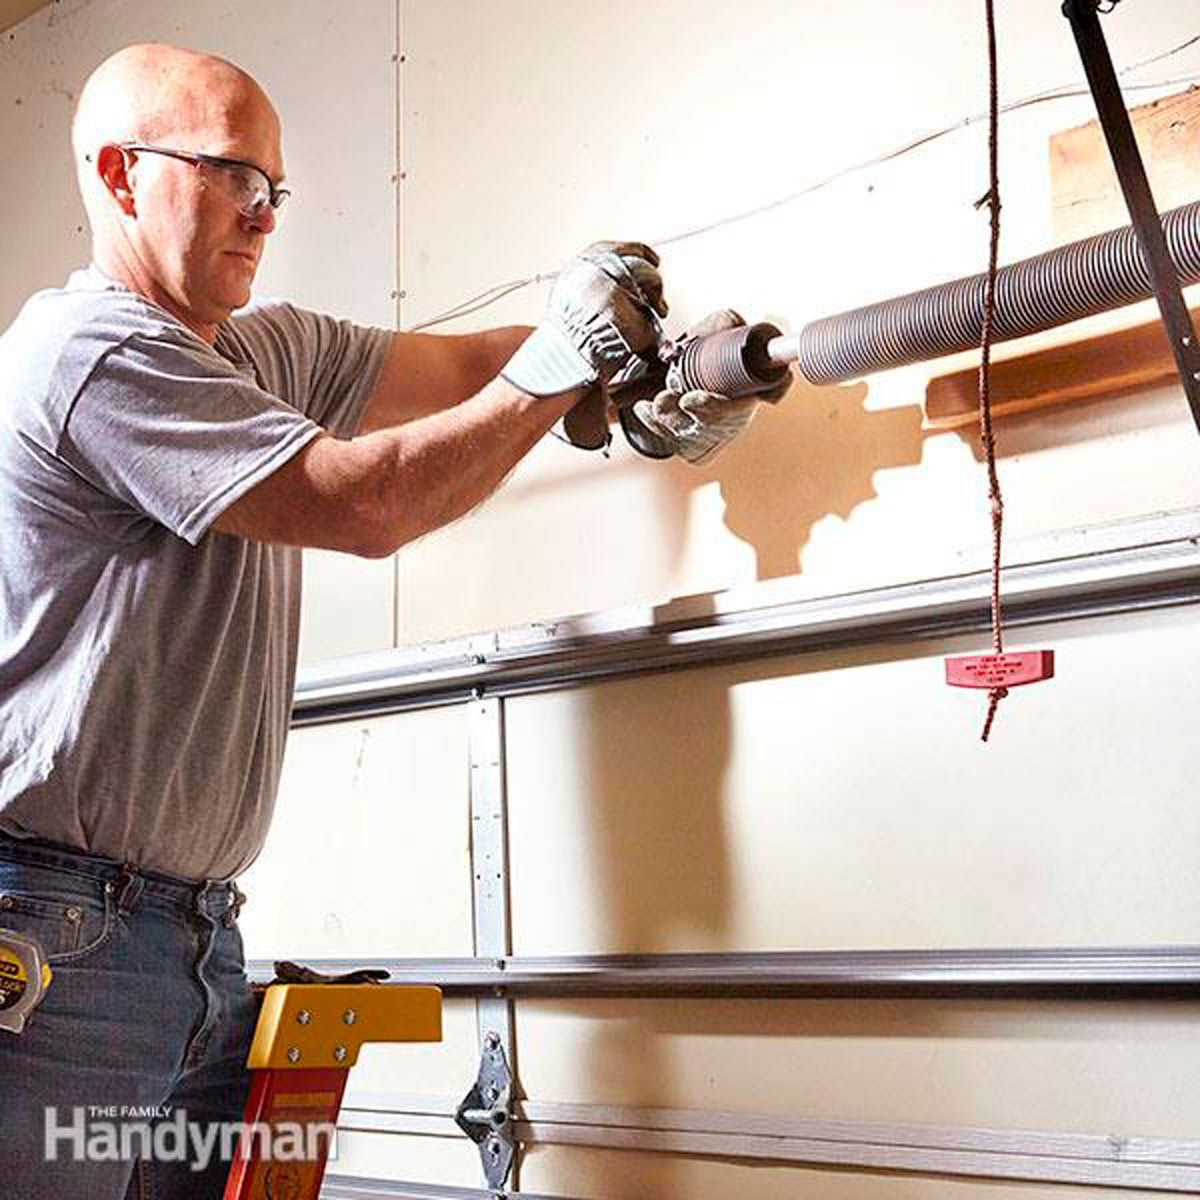 How To Repair Garage Door Springs And Cables With Images Garage Door Spring Repair Overhead Garage Door Garage Door Springs